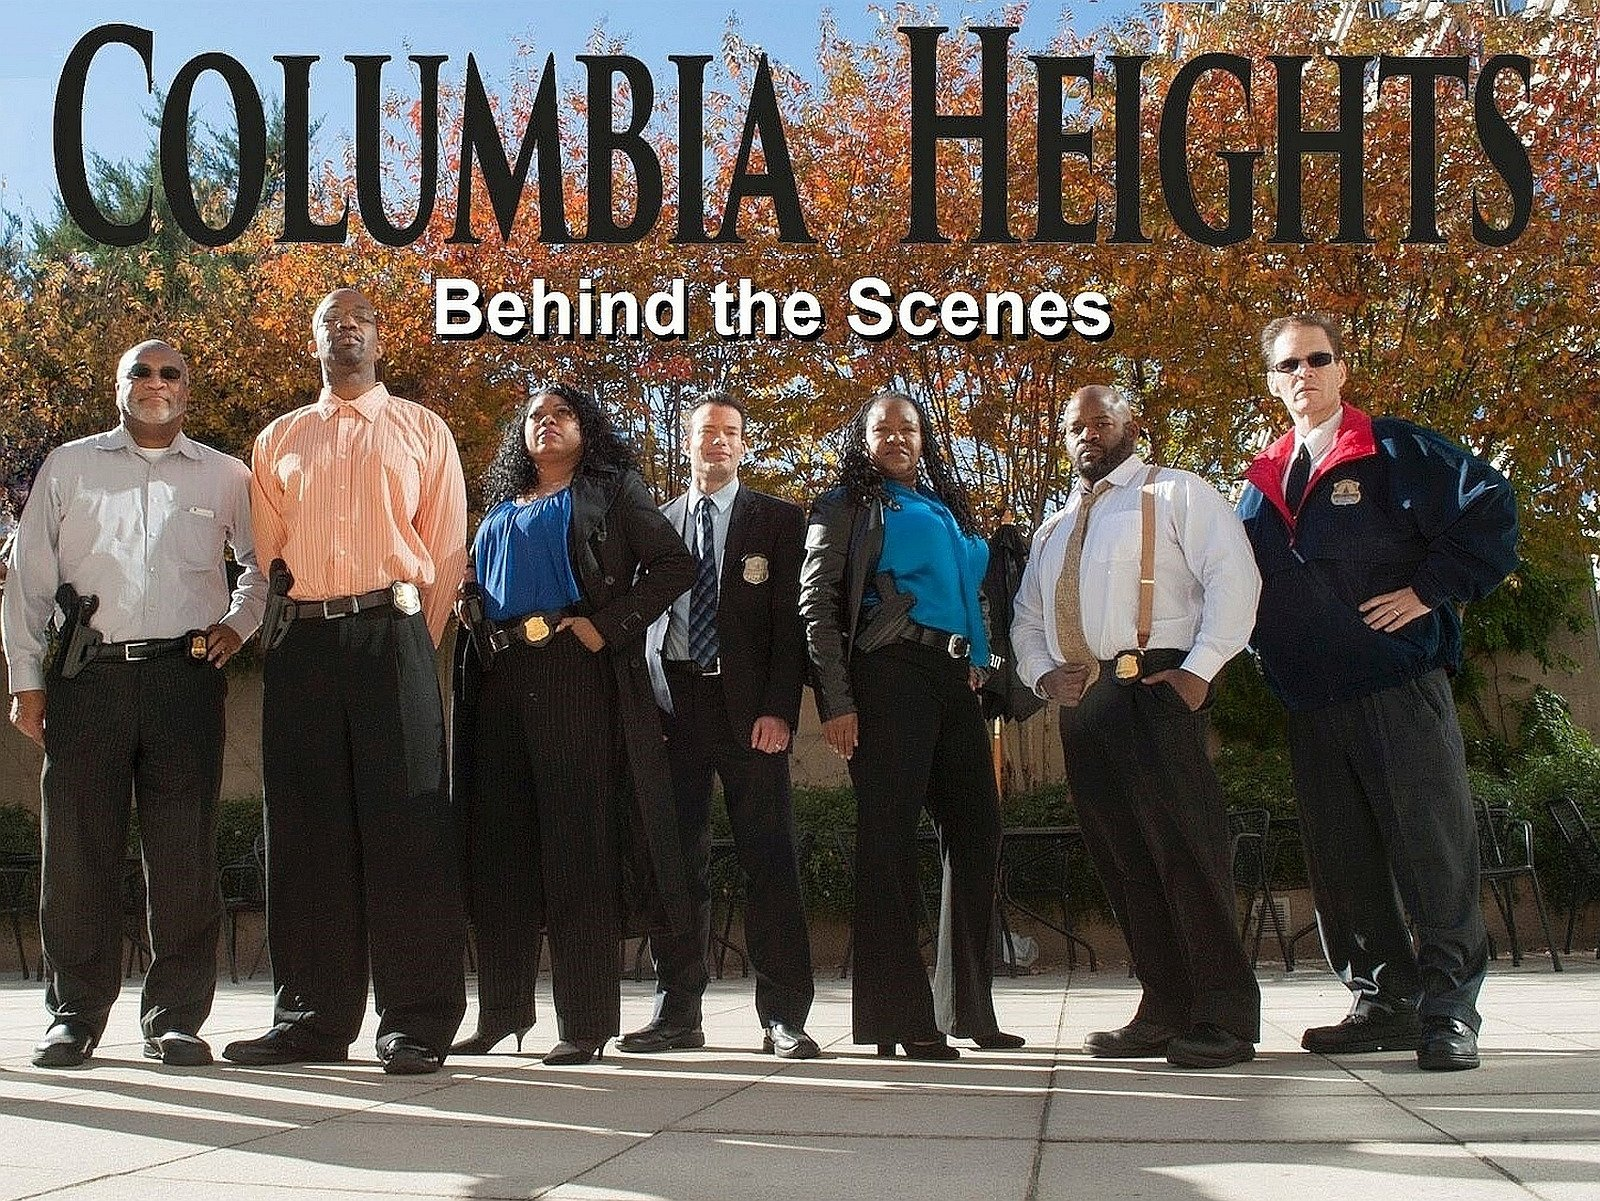 Clip: Columbia Heights - Season 1